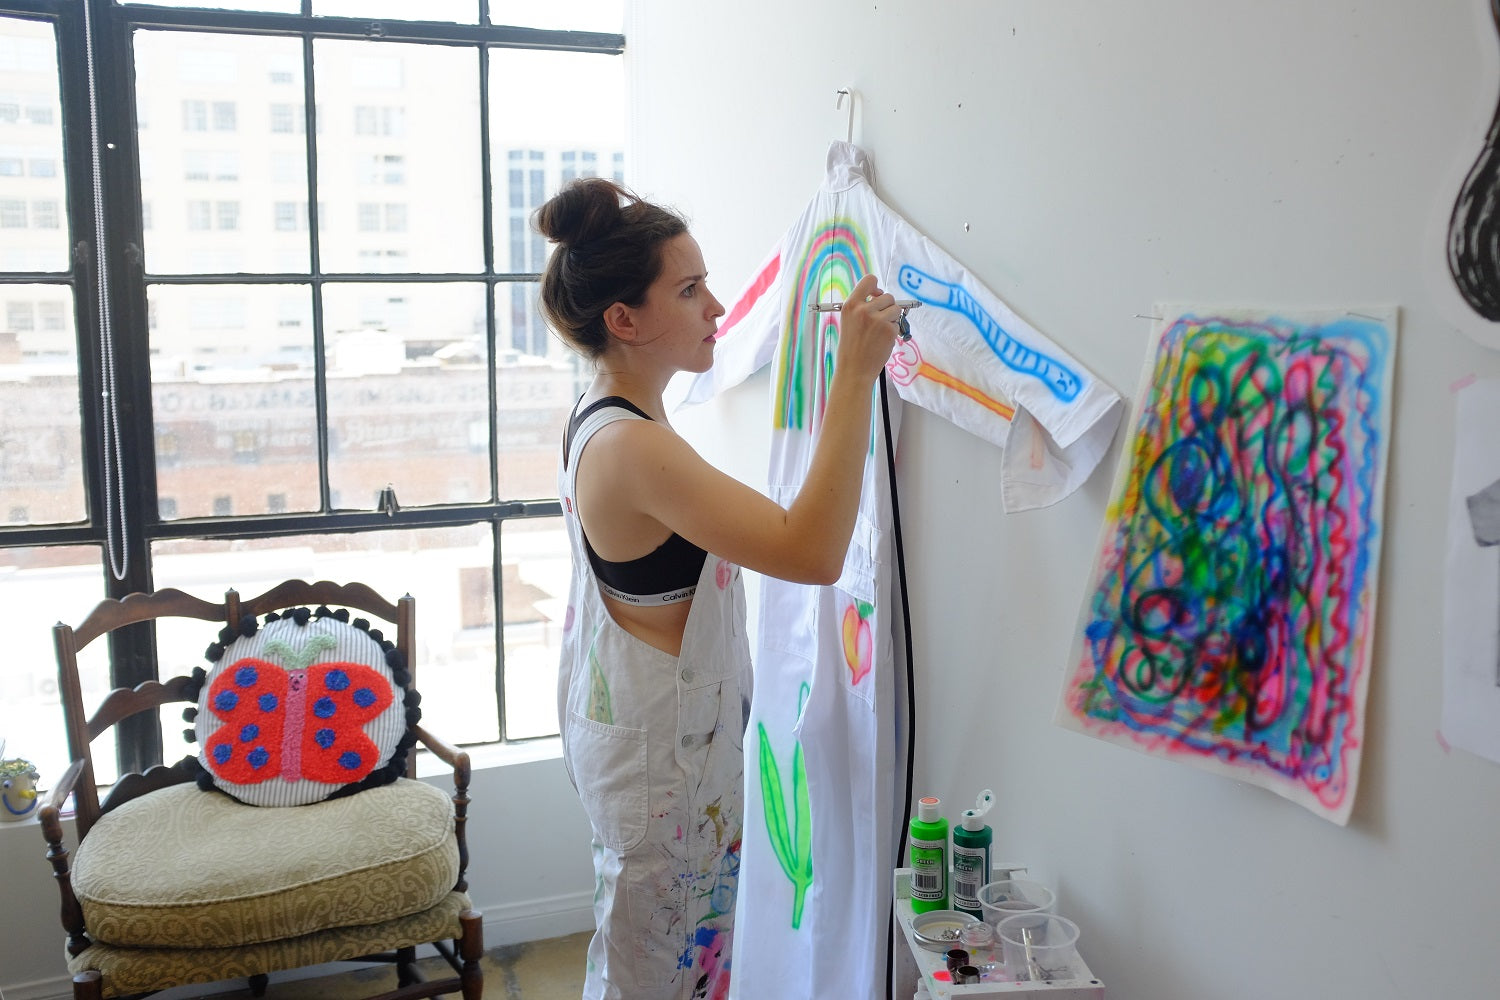 750da26ebb34 We are so excited for our upcoming collaboration with Gentle Thrills!  Gentle Thrills is artist Isa Beniston and her sense of humor